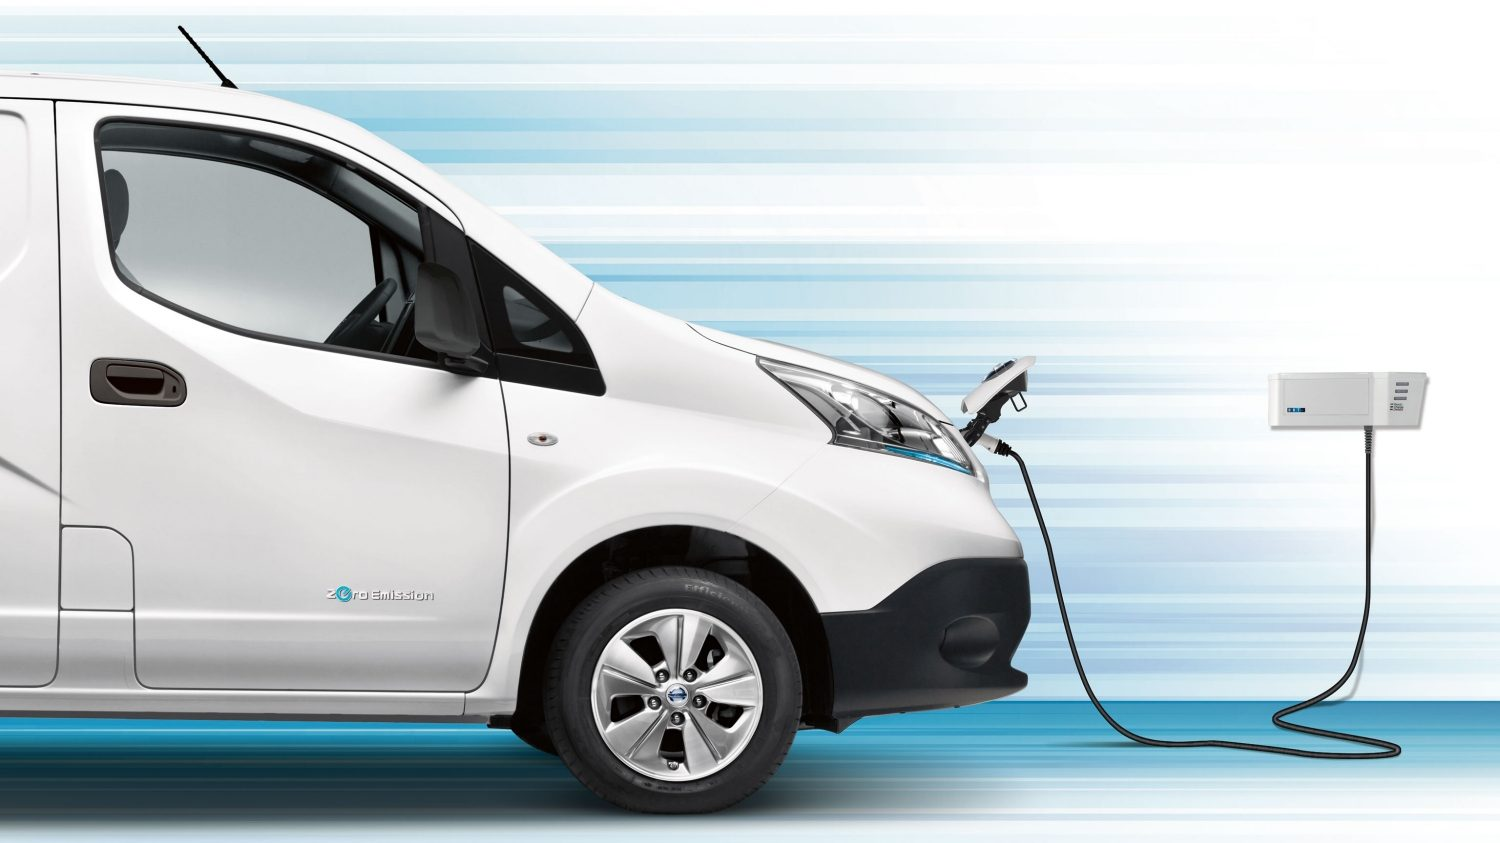 Van | Nissan e-NV200 | Electric van charging